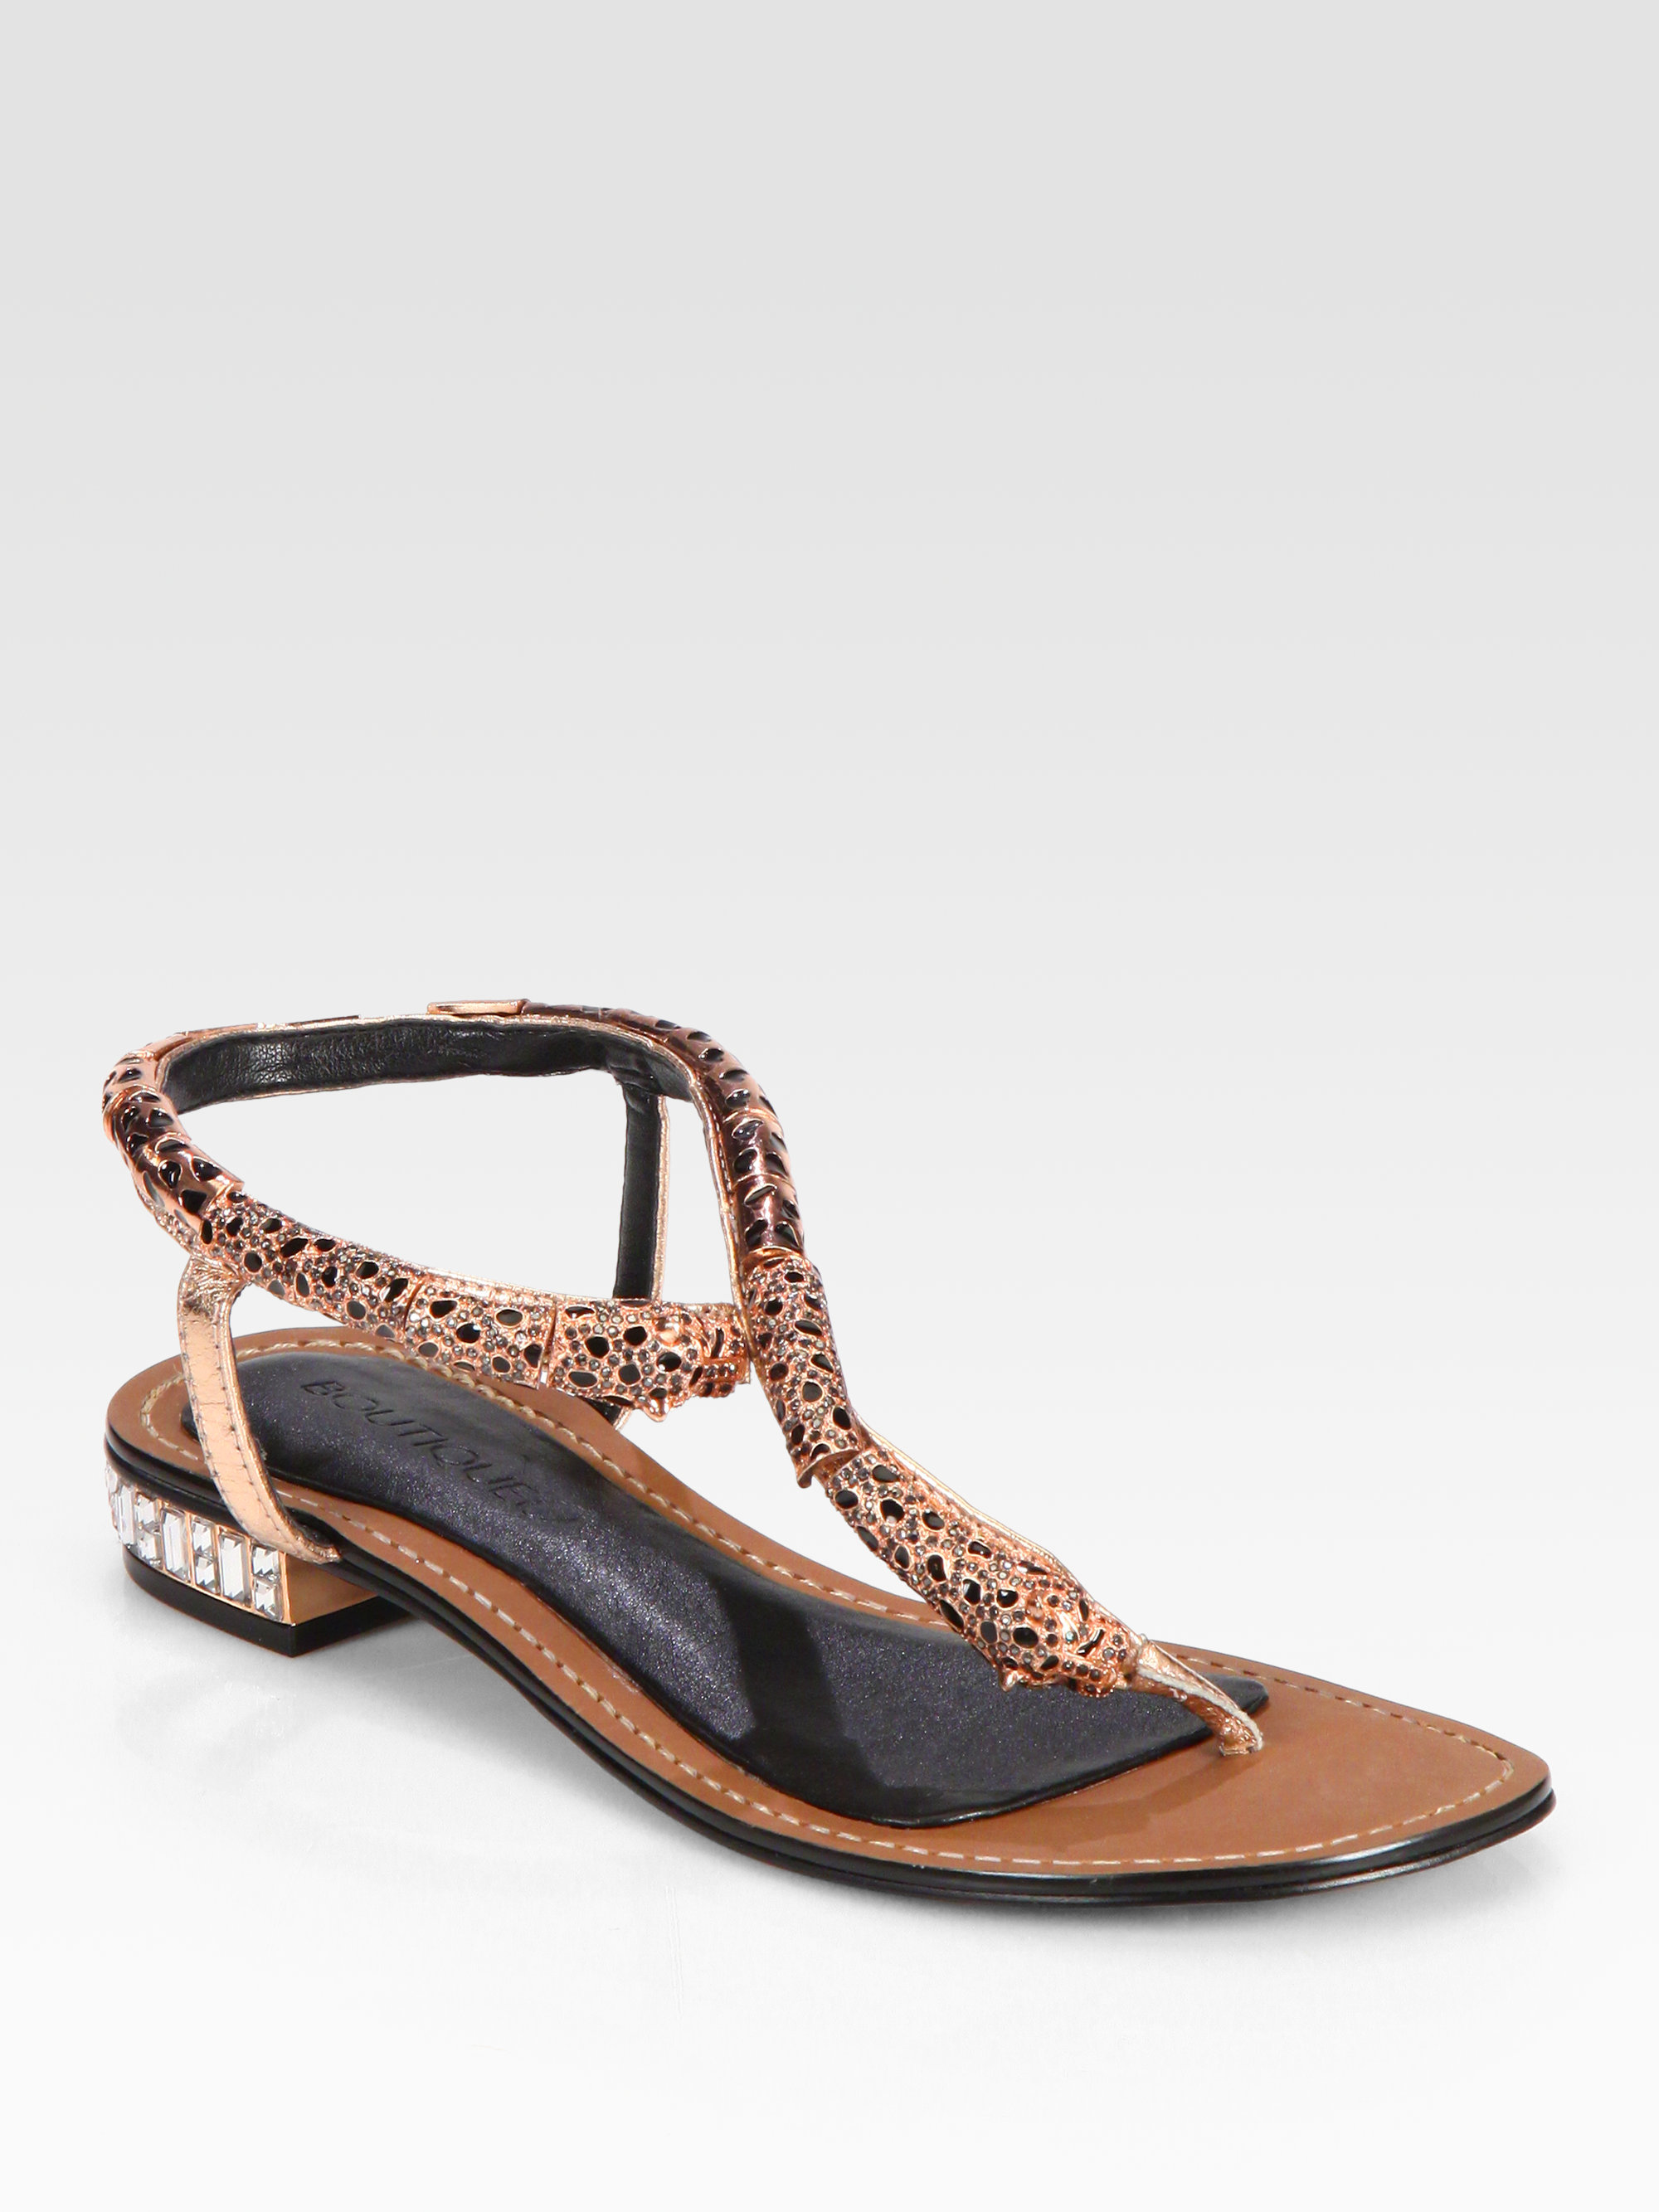 Lyst Boutique 9 Rhinestone Panther Sandals In Brown